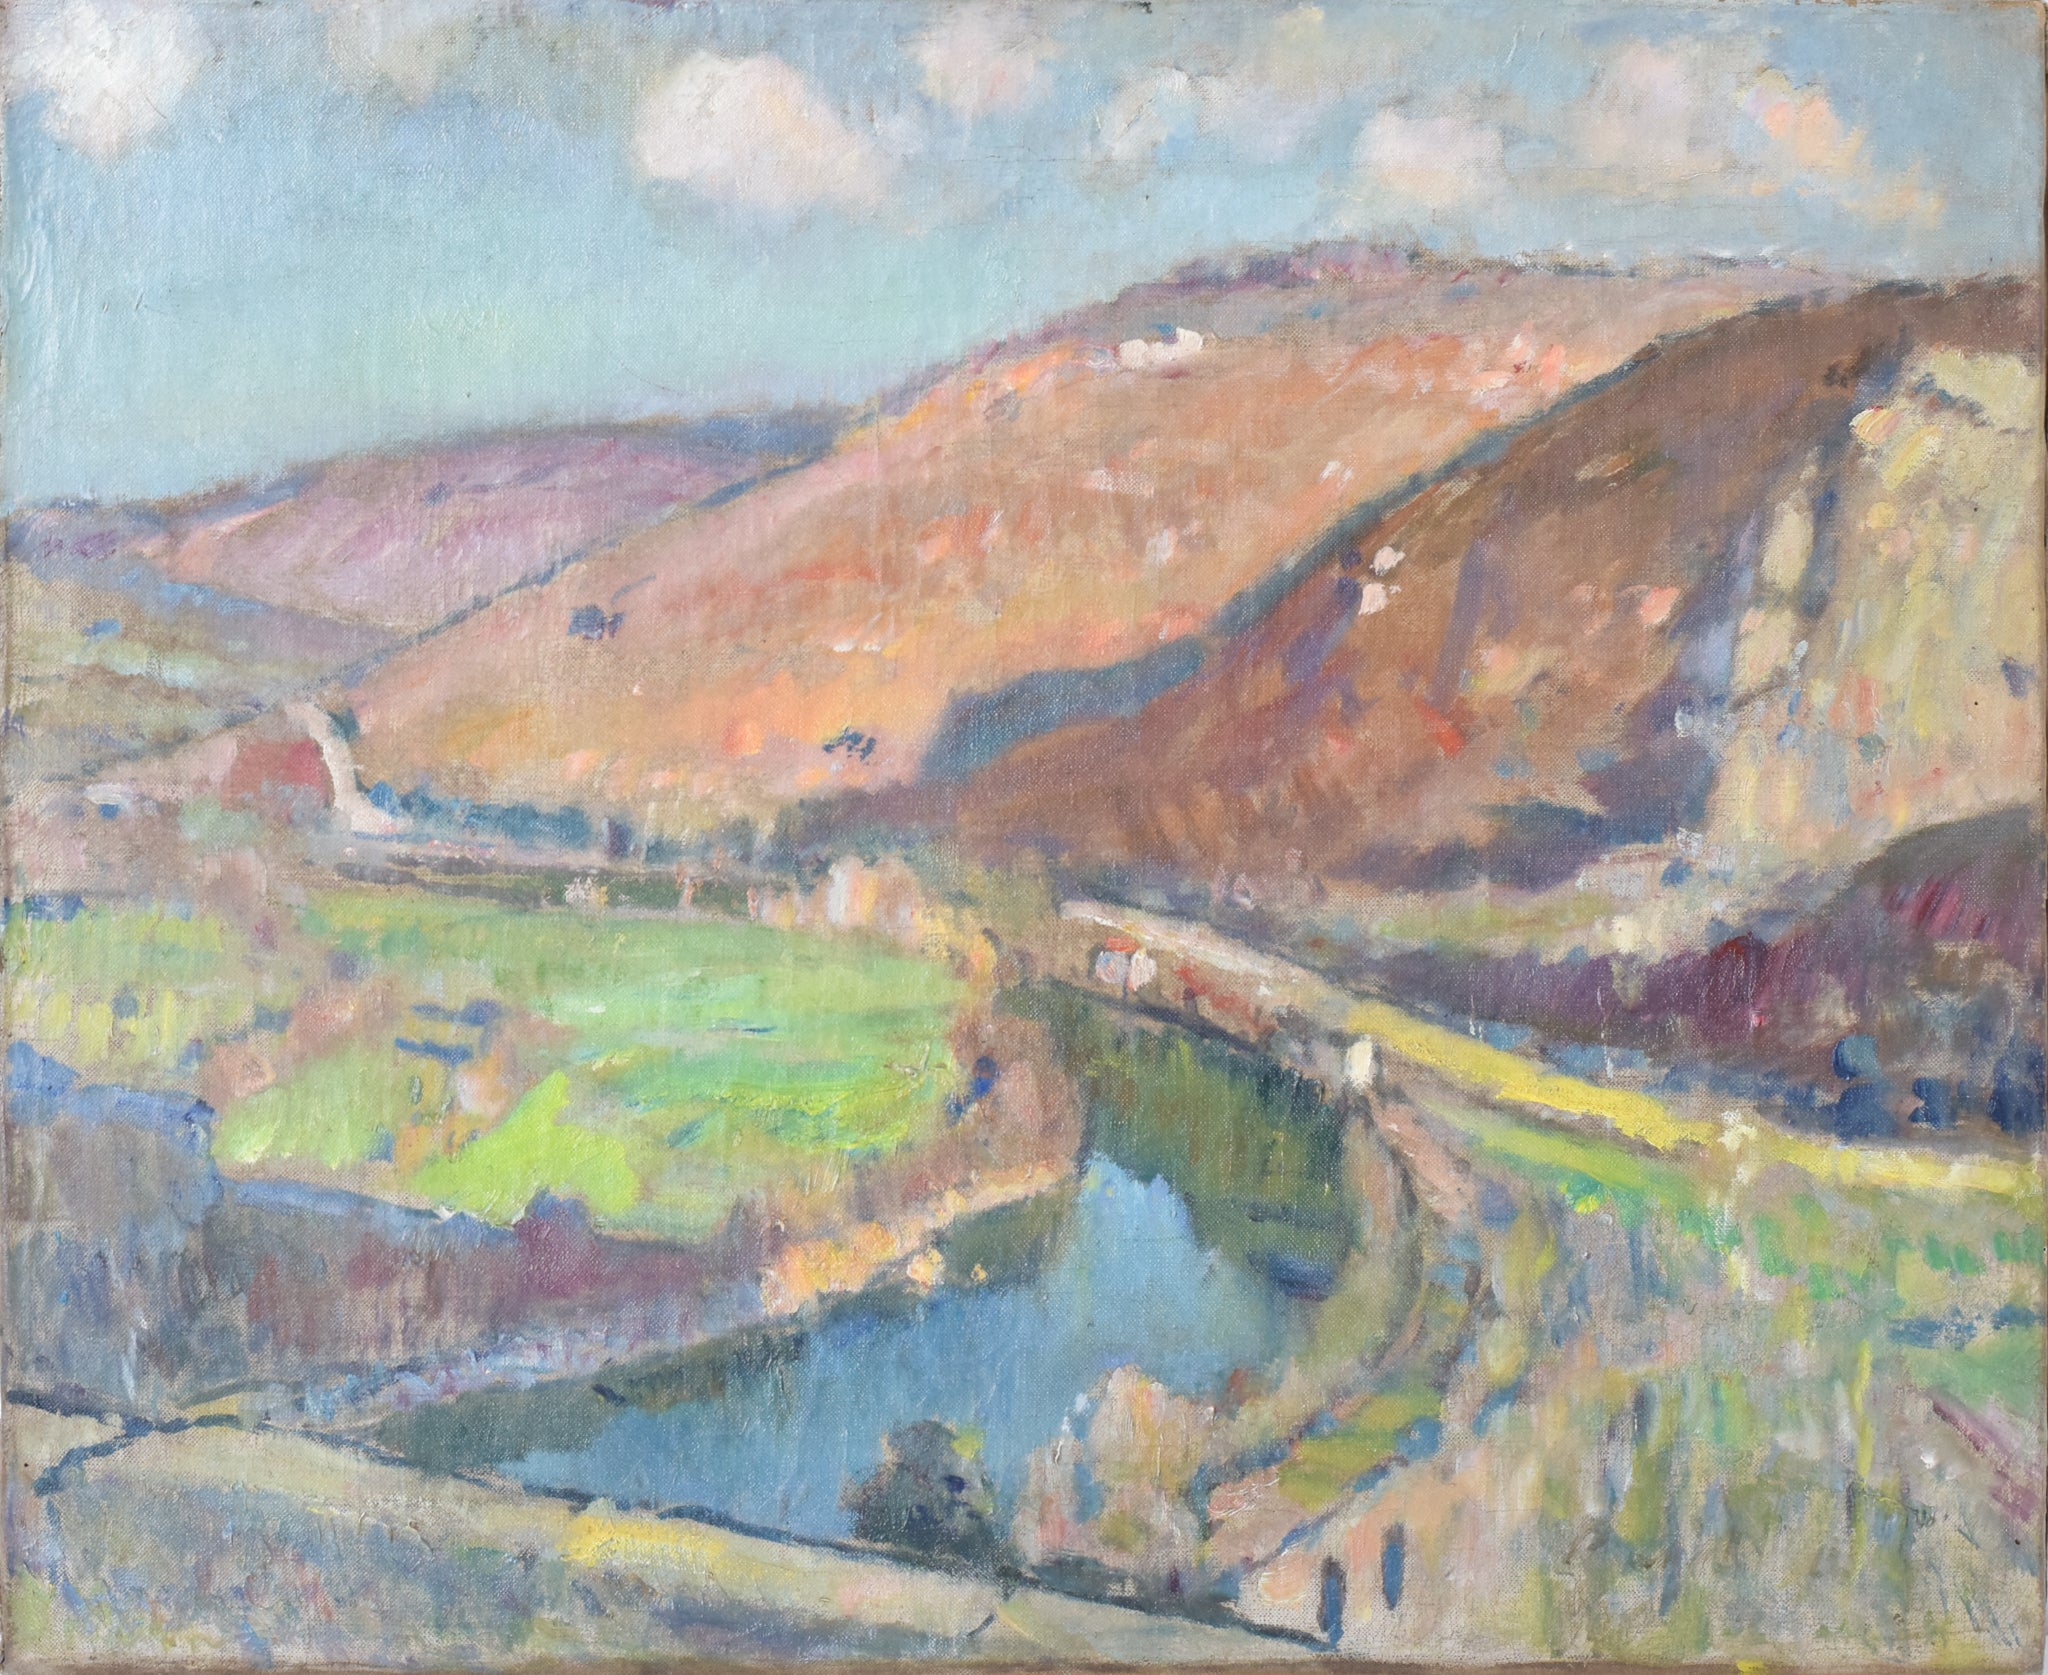 Impressionist Landscape with Hills and River